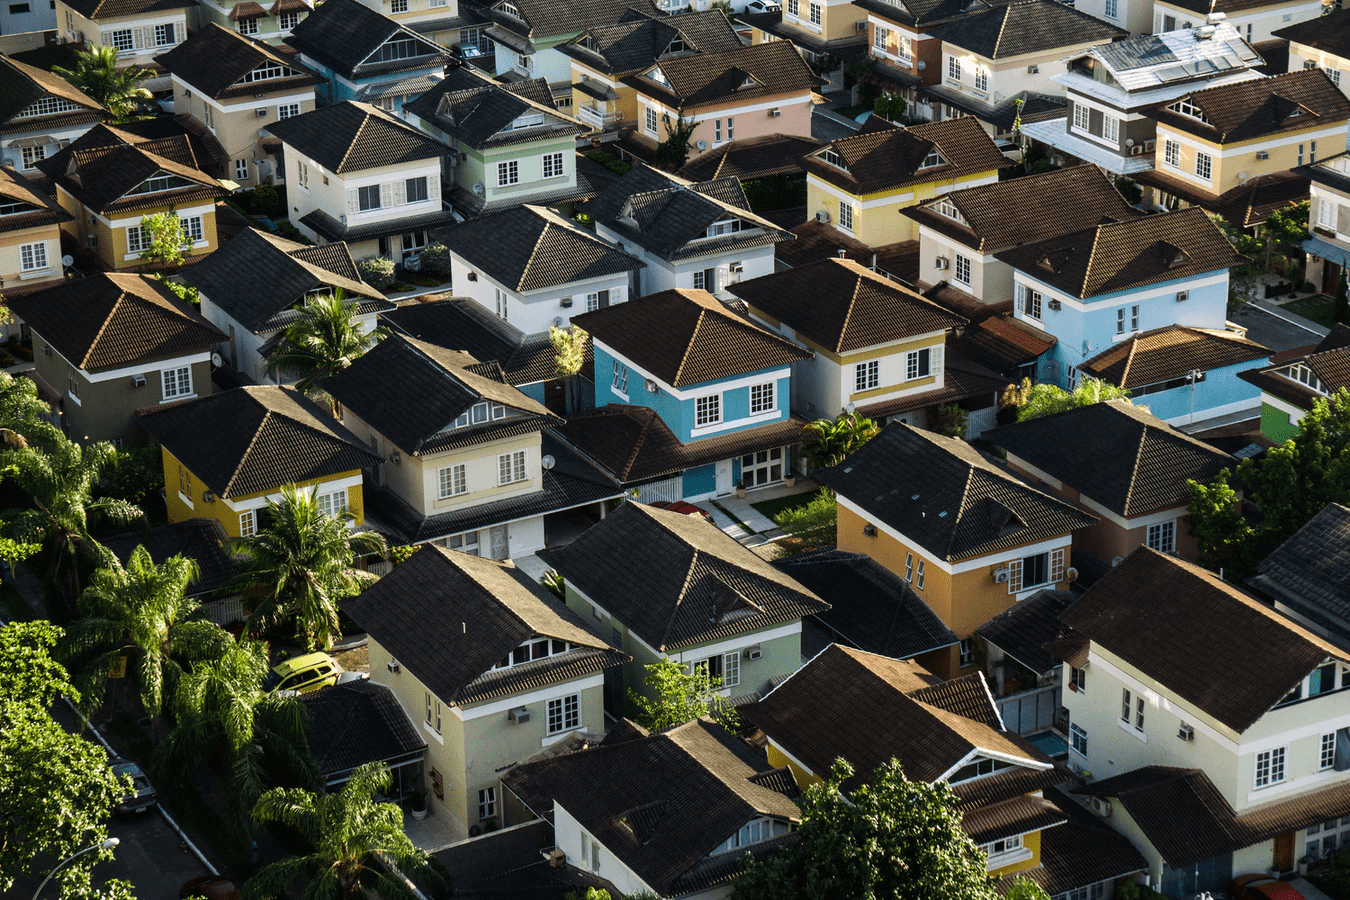 Homogenized Housing To Demonstrate Importance Of Standing Out